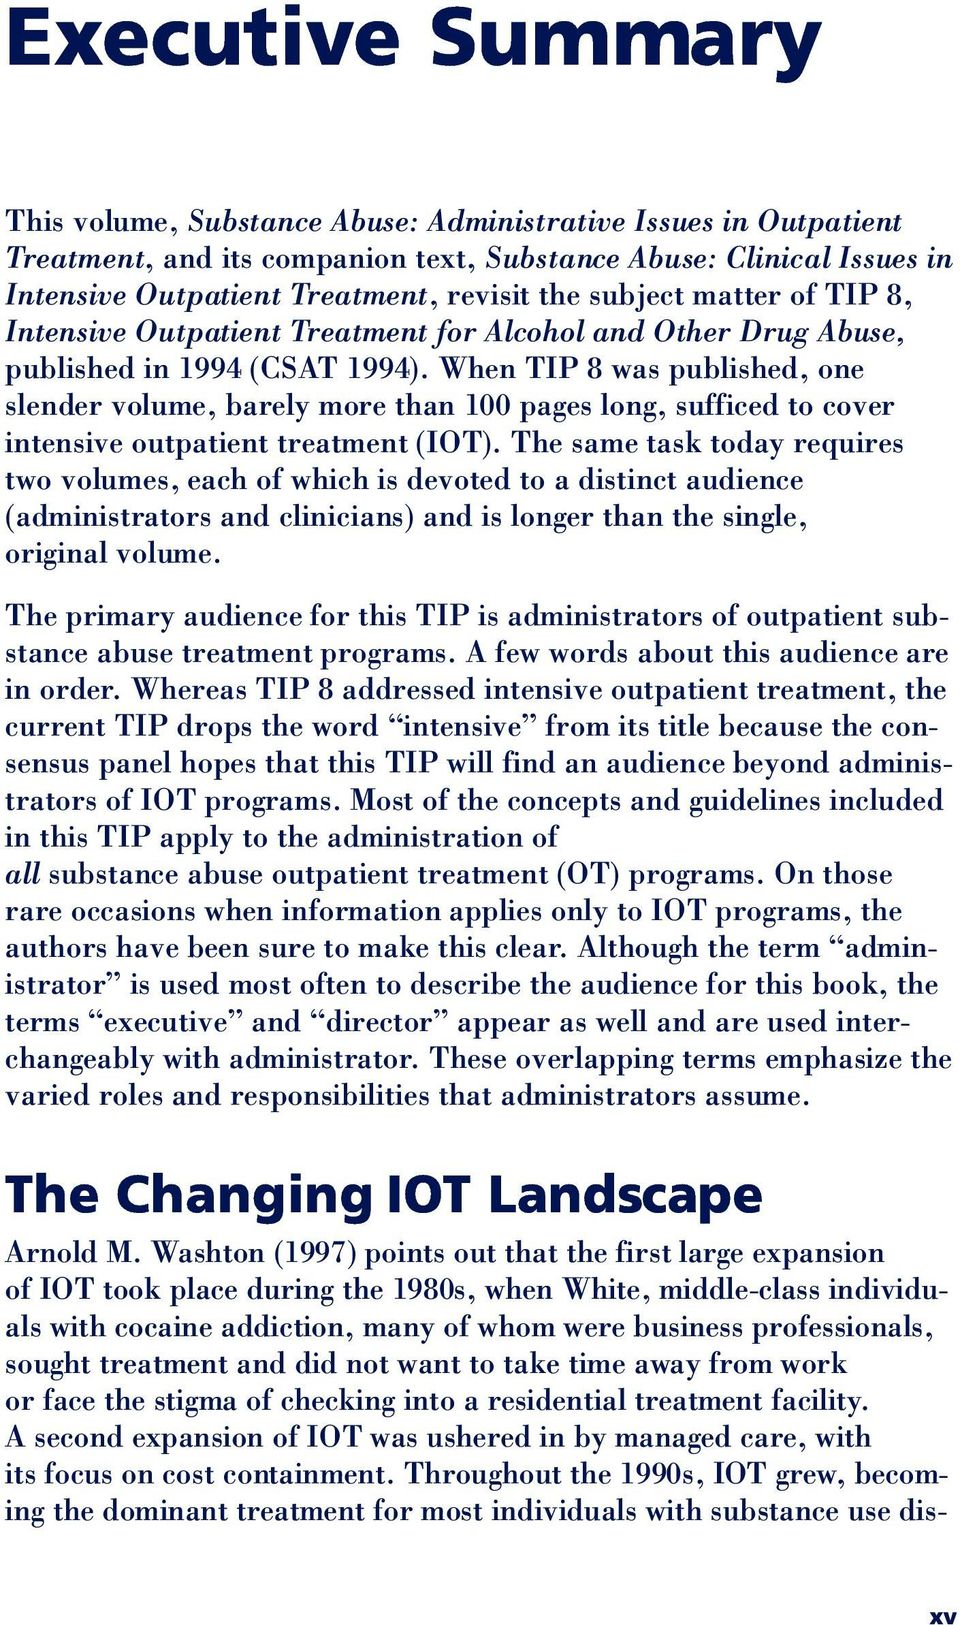 When TIP 8 was published, one slender volume, barely more than 100 pages long, sufficed to cover intensive outpatient treatment (IOT).